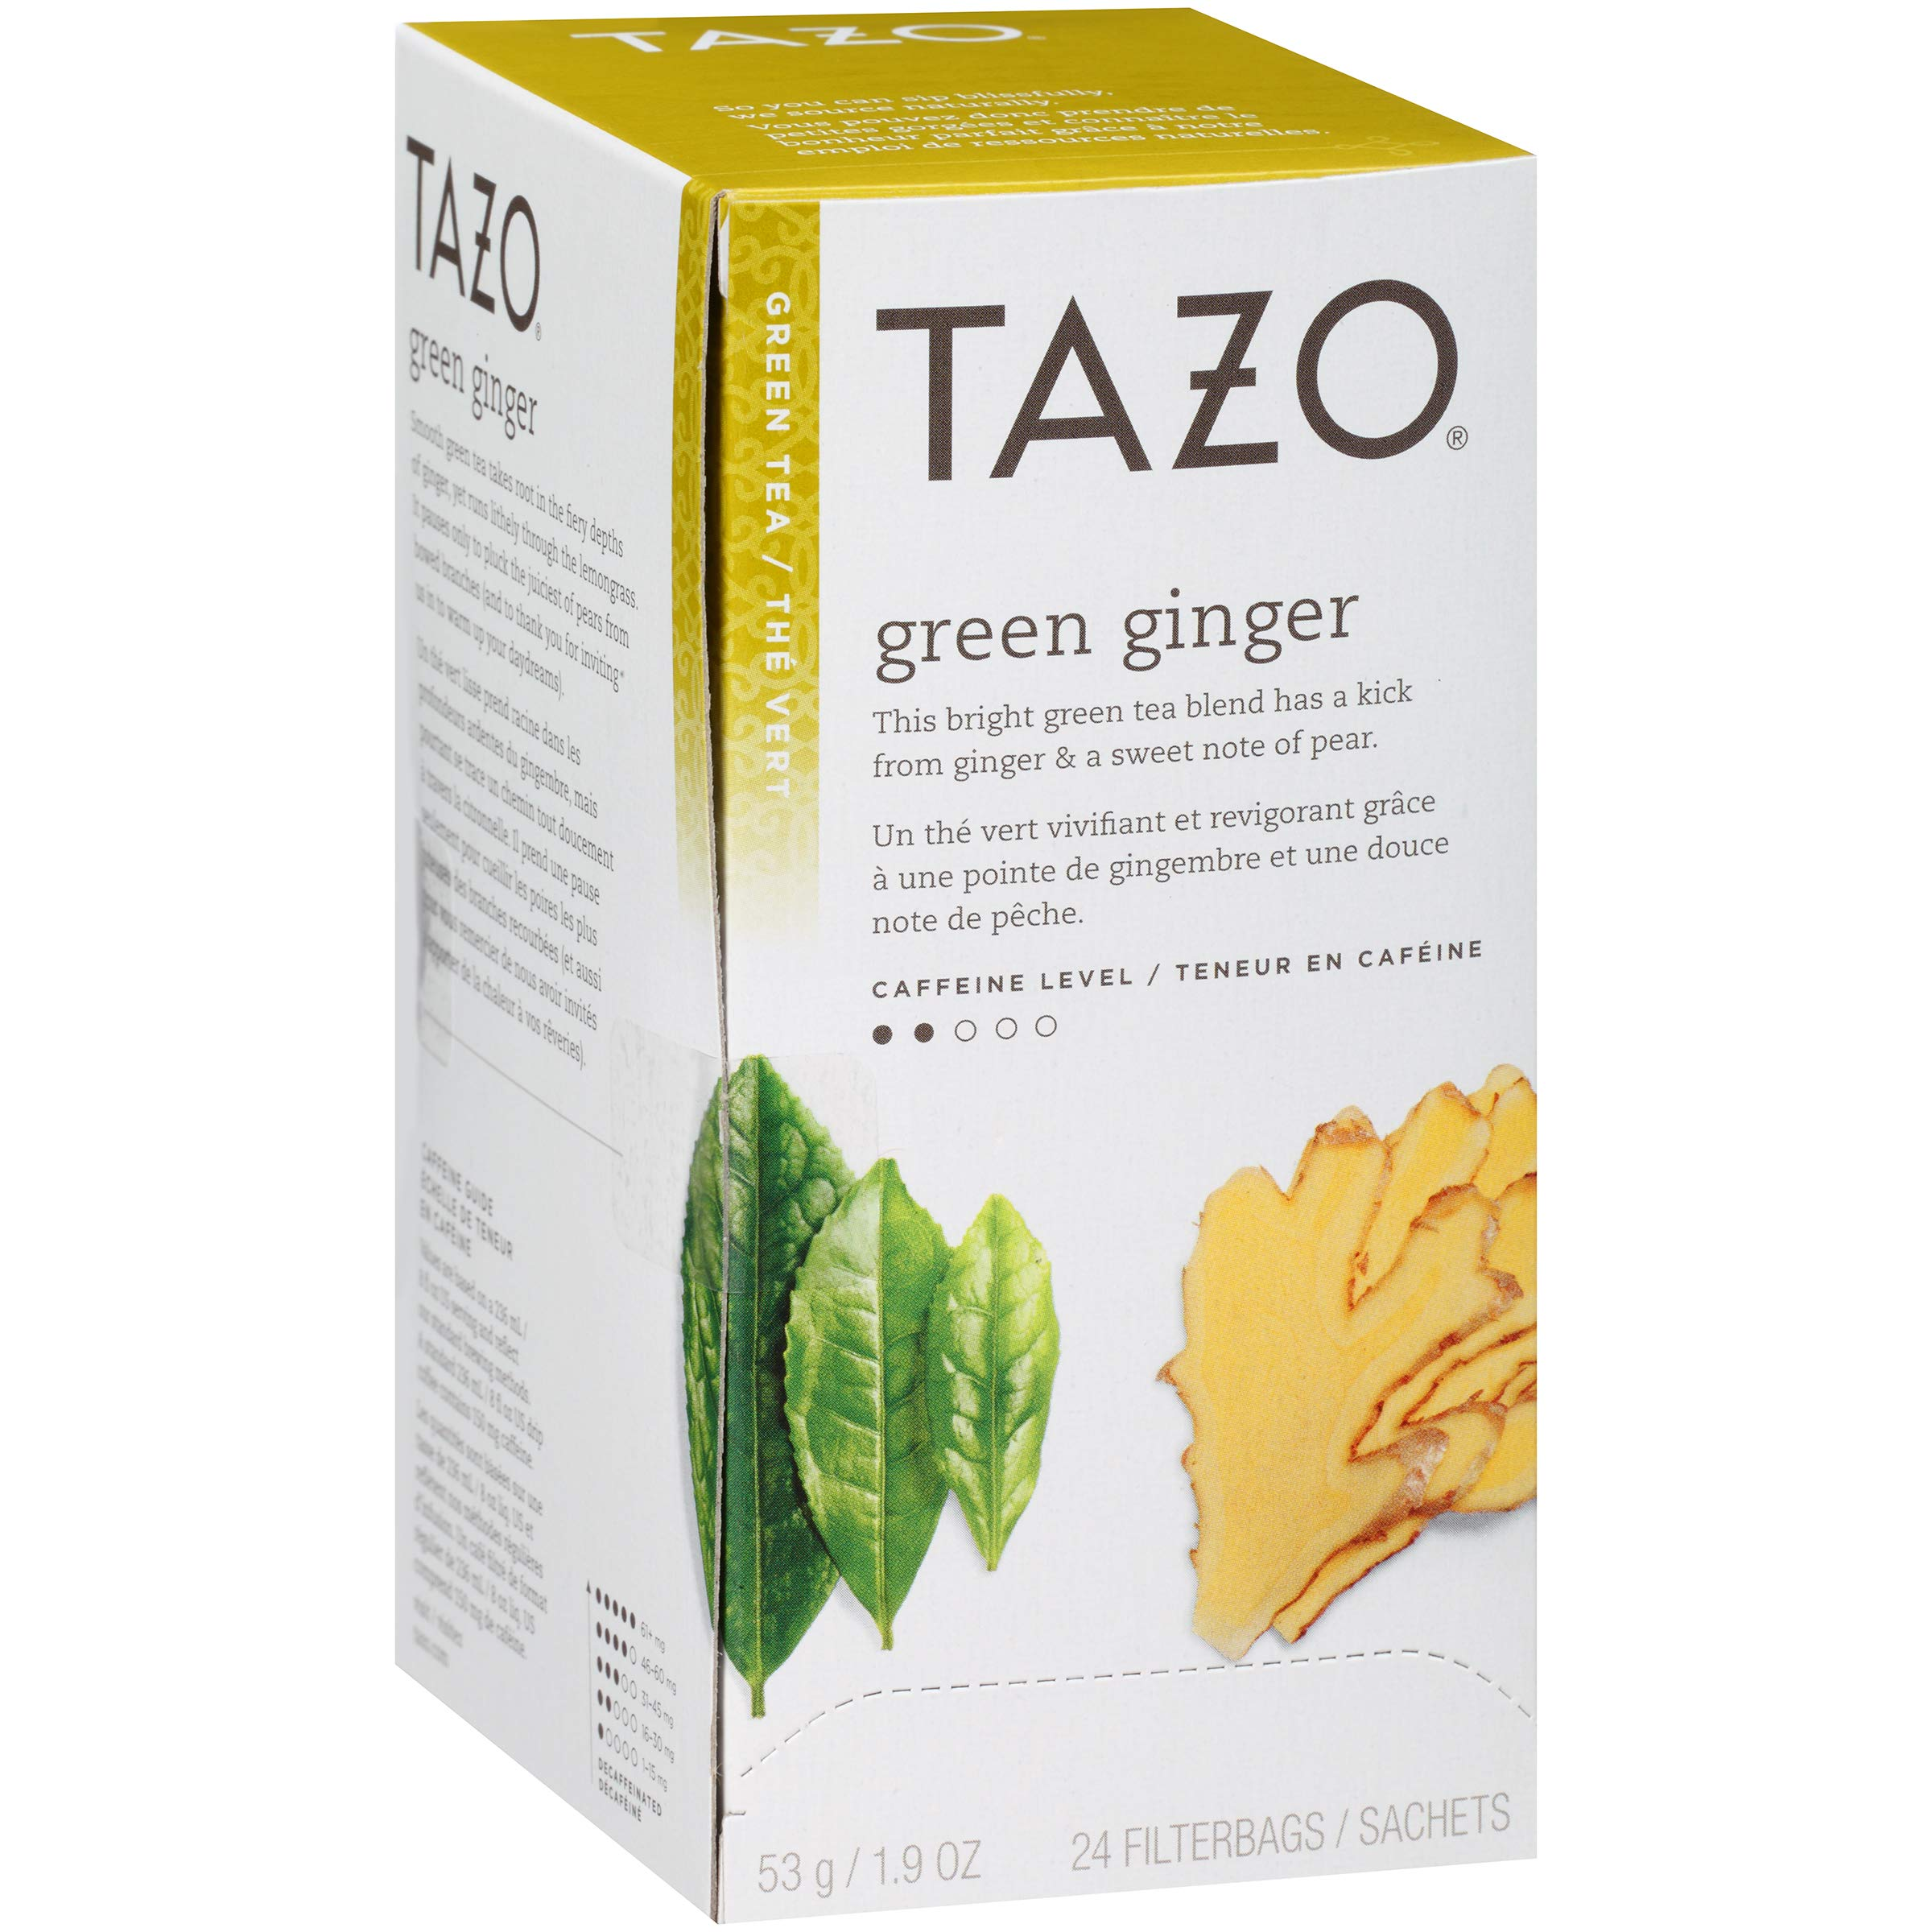 TazoGreen Ginger Enveloped Hot Tea Filterbags Non GMO, 24 count, Pack of 6